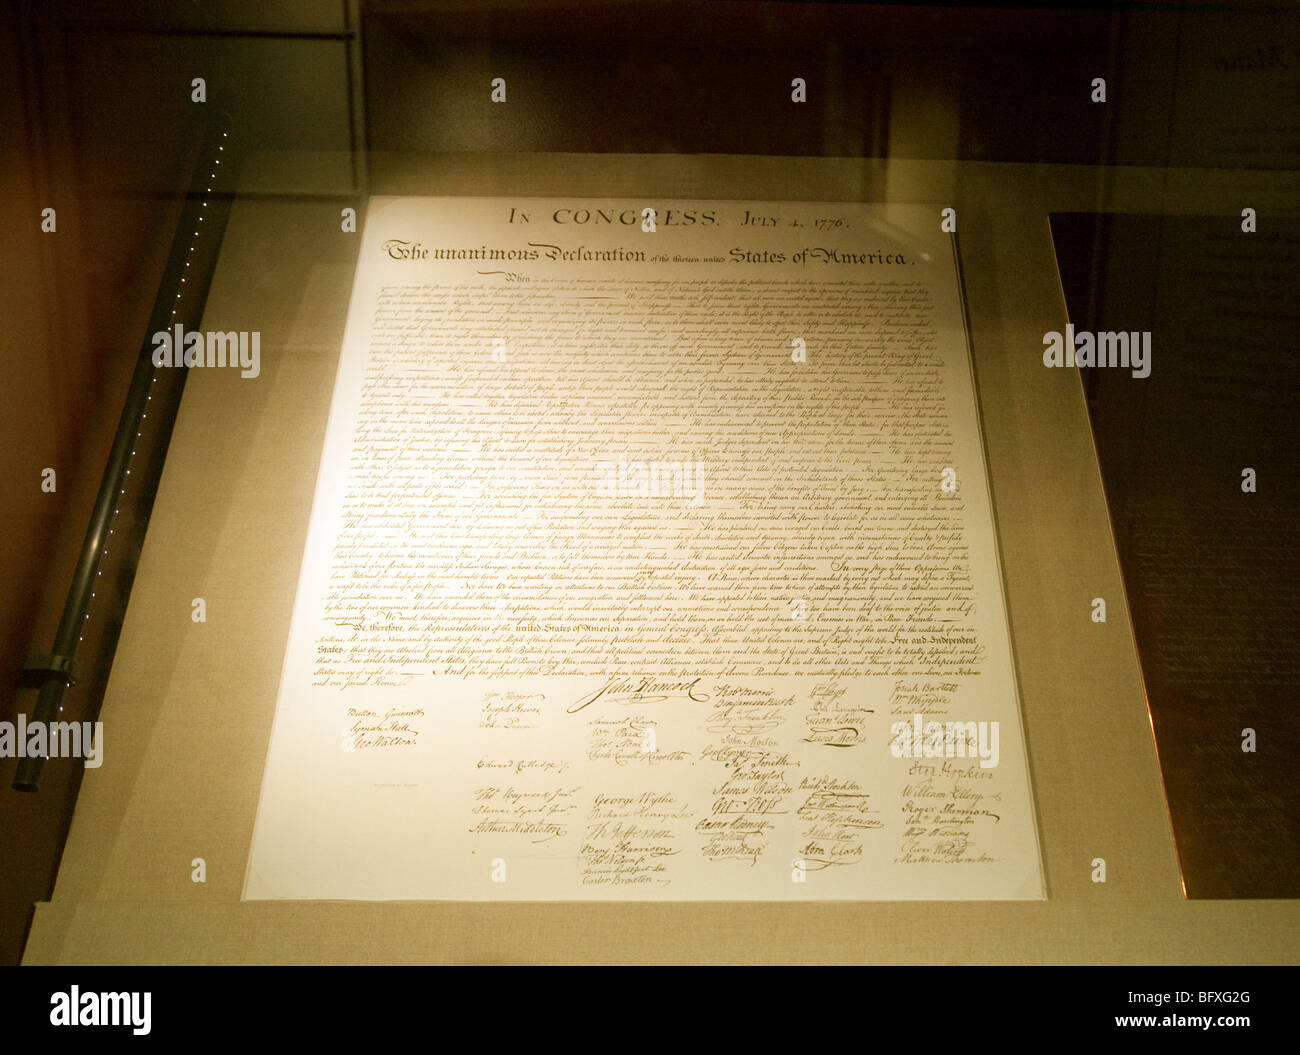 Original of the Declaration of Independence document, The National Archives, Washington DC, USA - Stock Image